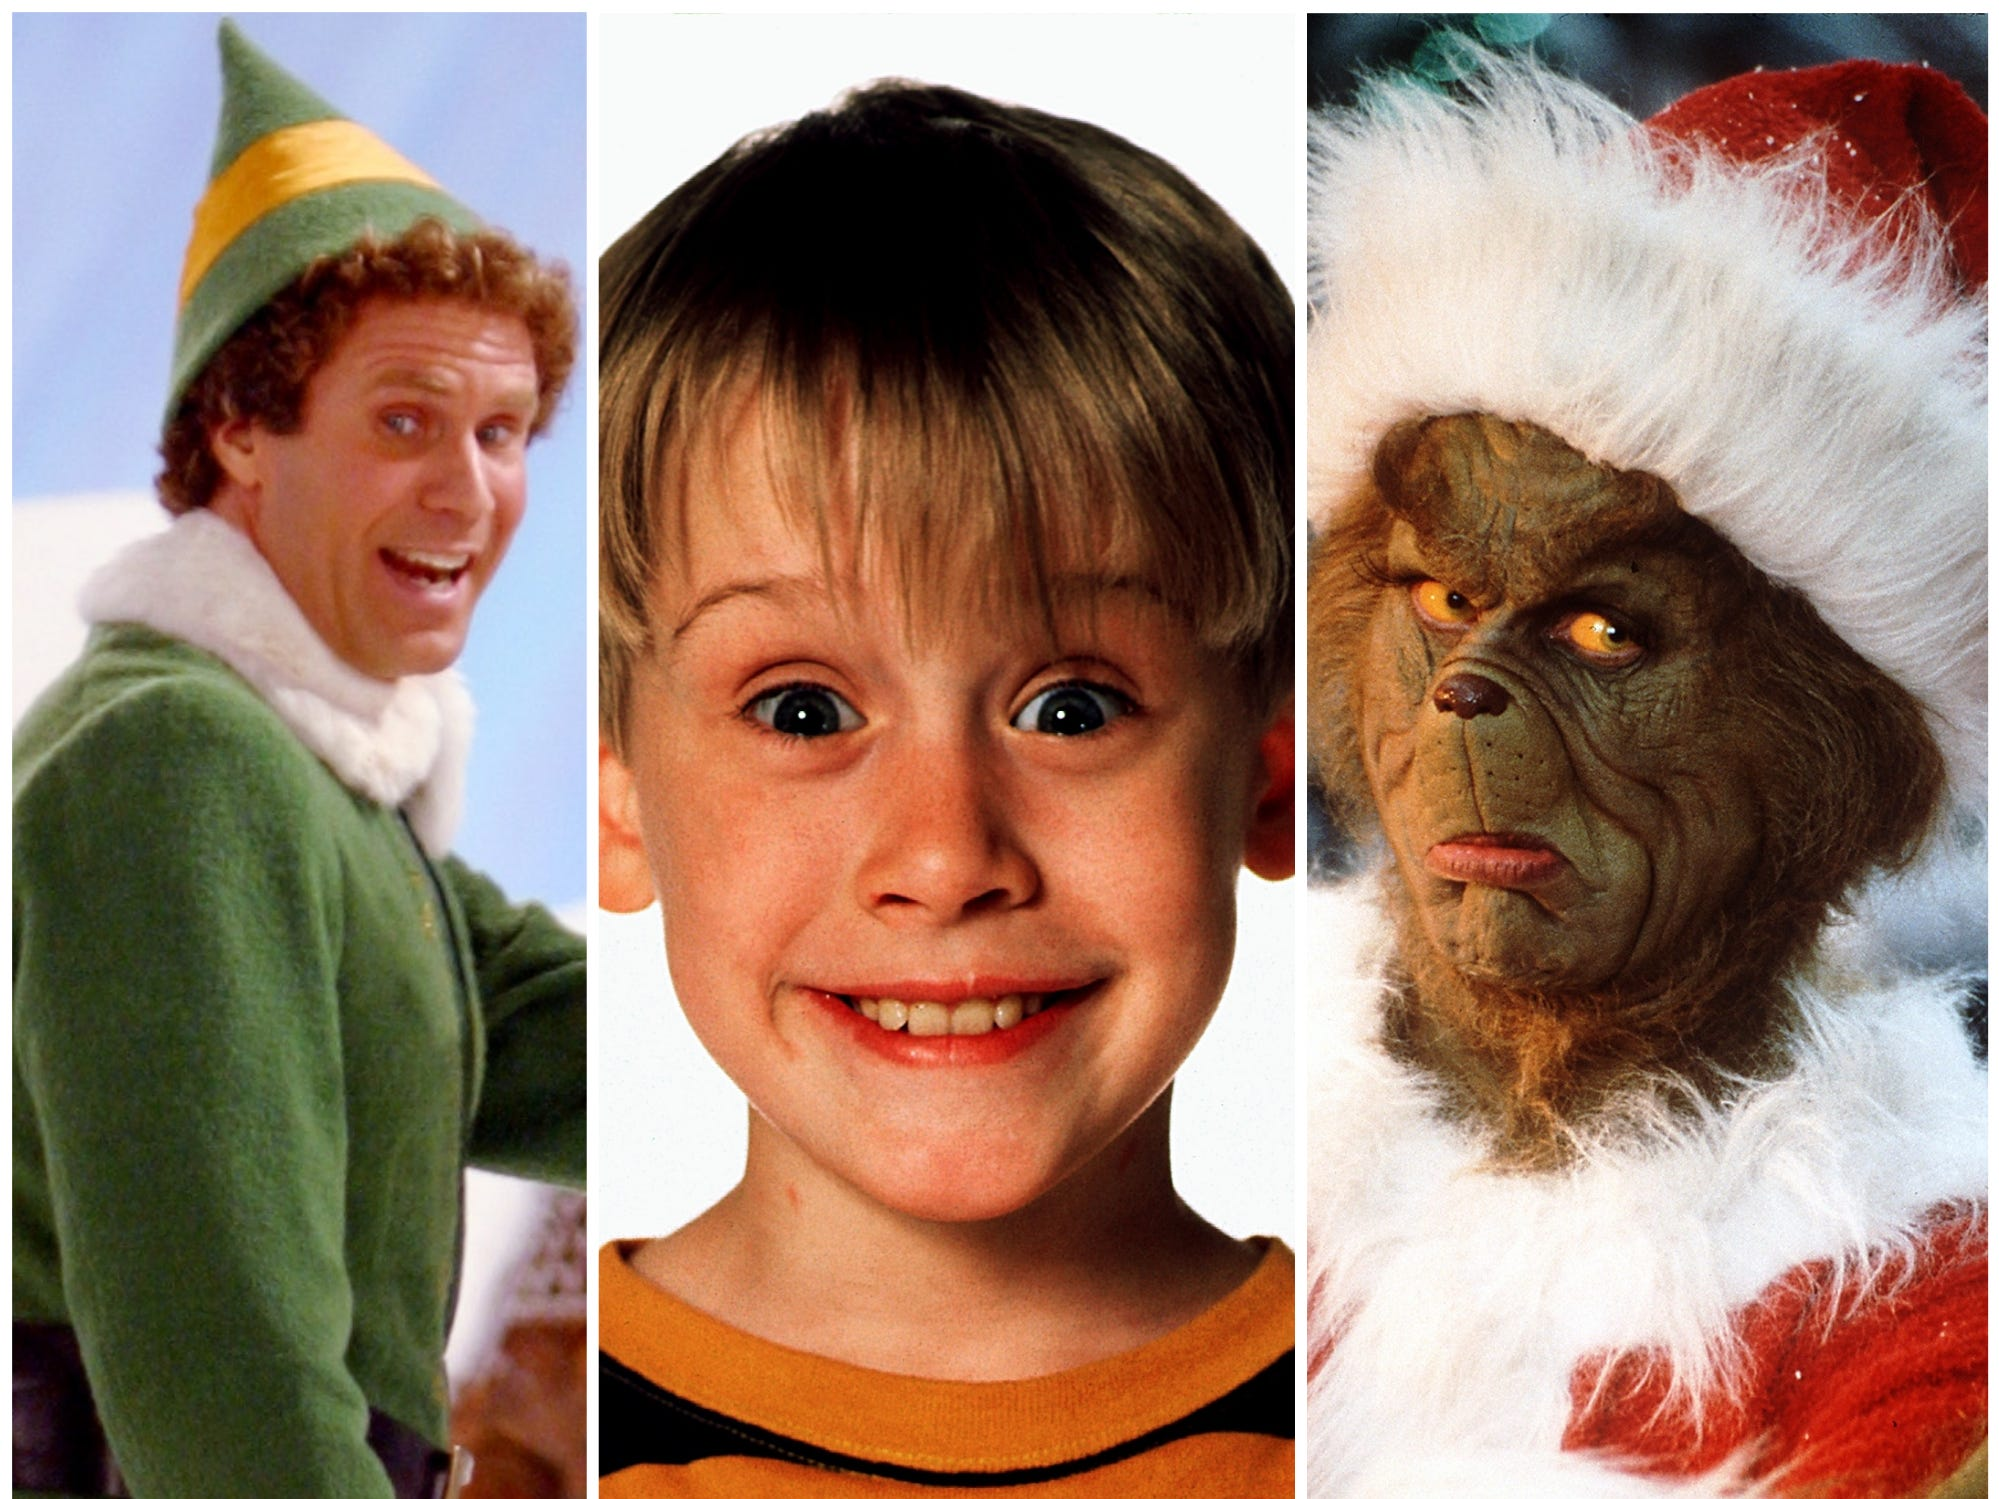 Exclusive: According to Fandango, millennials' favorite holiday films are ...